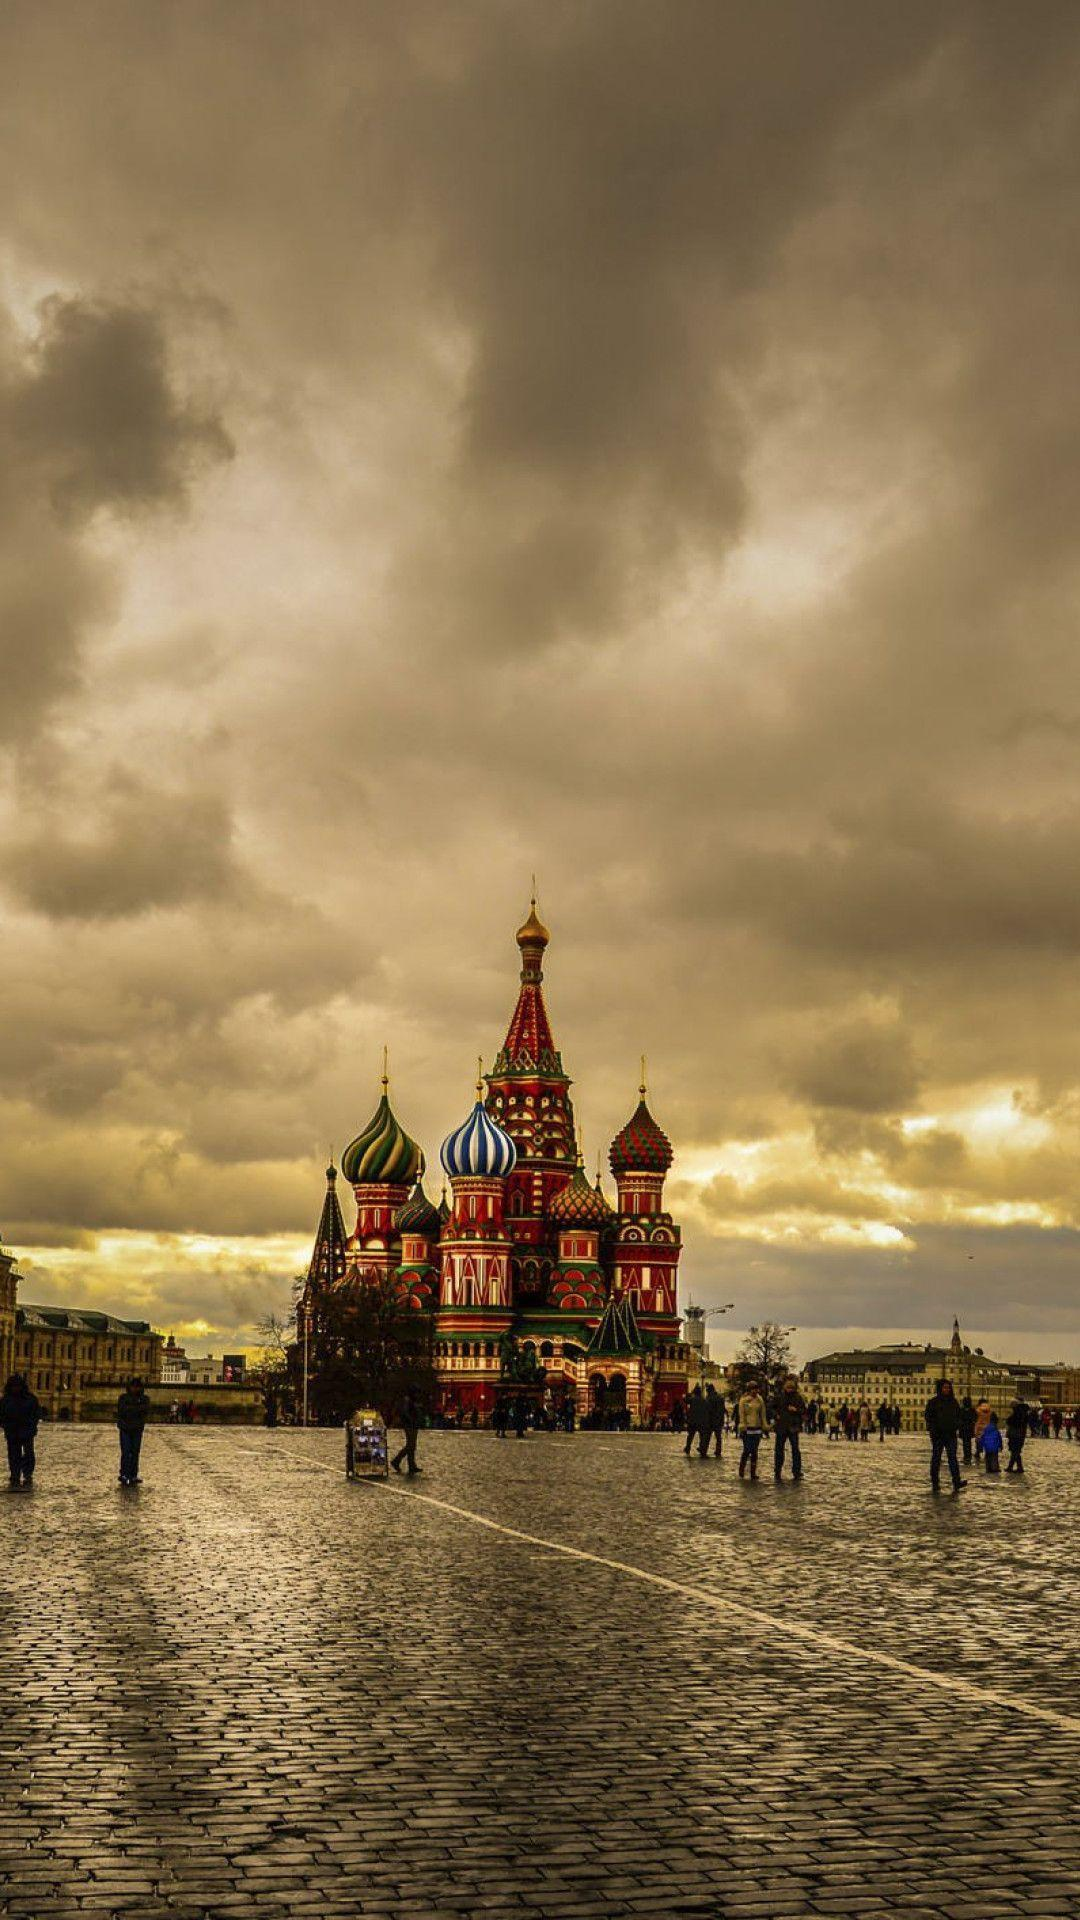 Moscow Wallpapers for Iphone 7, Iphone 7 plus, Iphone 6 plus